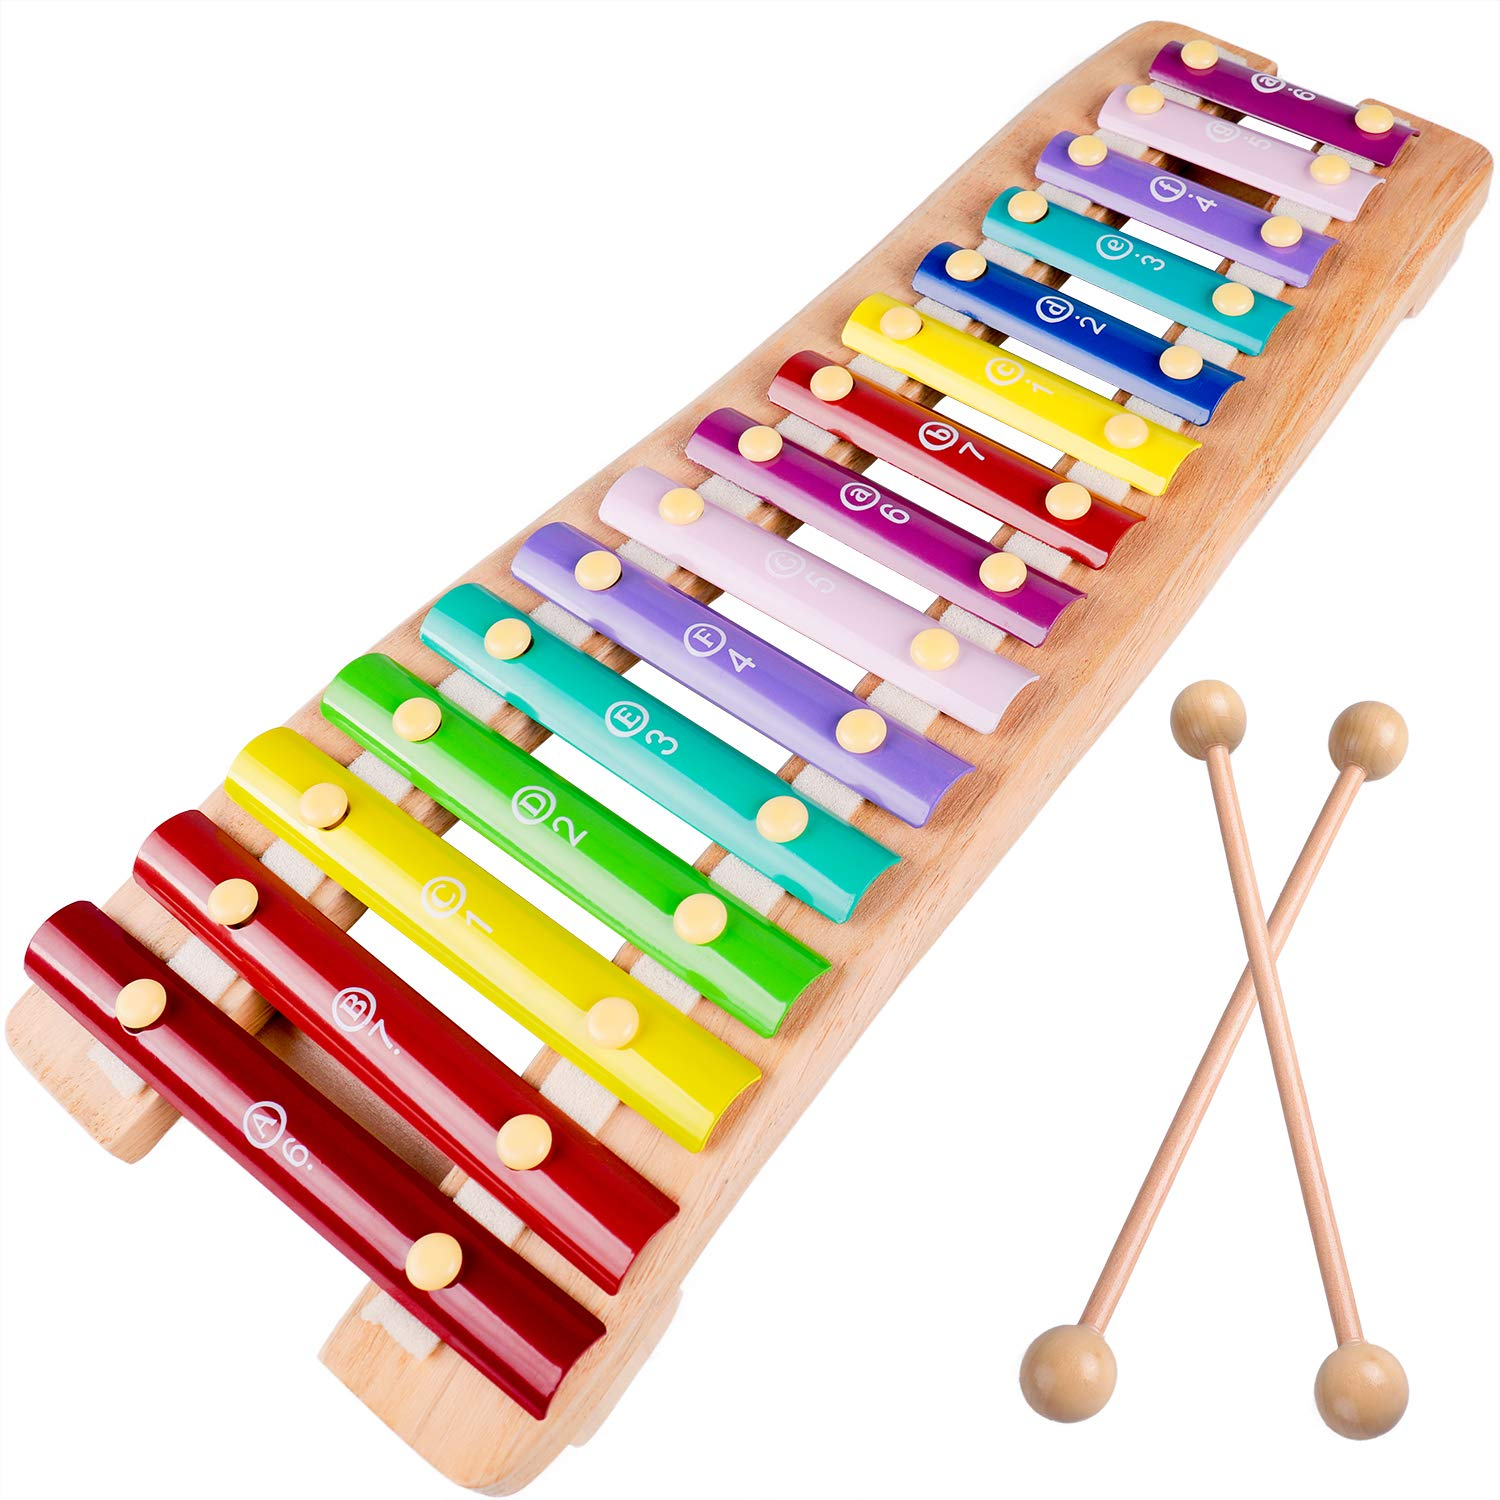 rolimate Wooden Educational Preschool Learning 15 Key Notes Chromatic Glockenspiel Xylophone Toys, Best Christmas Gift for for age 3 4 5 Years Old and Up Toddlers Kids Baby Children Boys Girls by rolimate